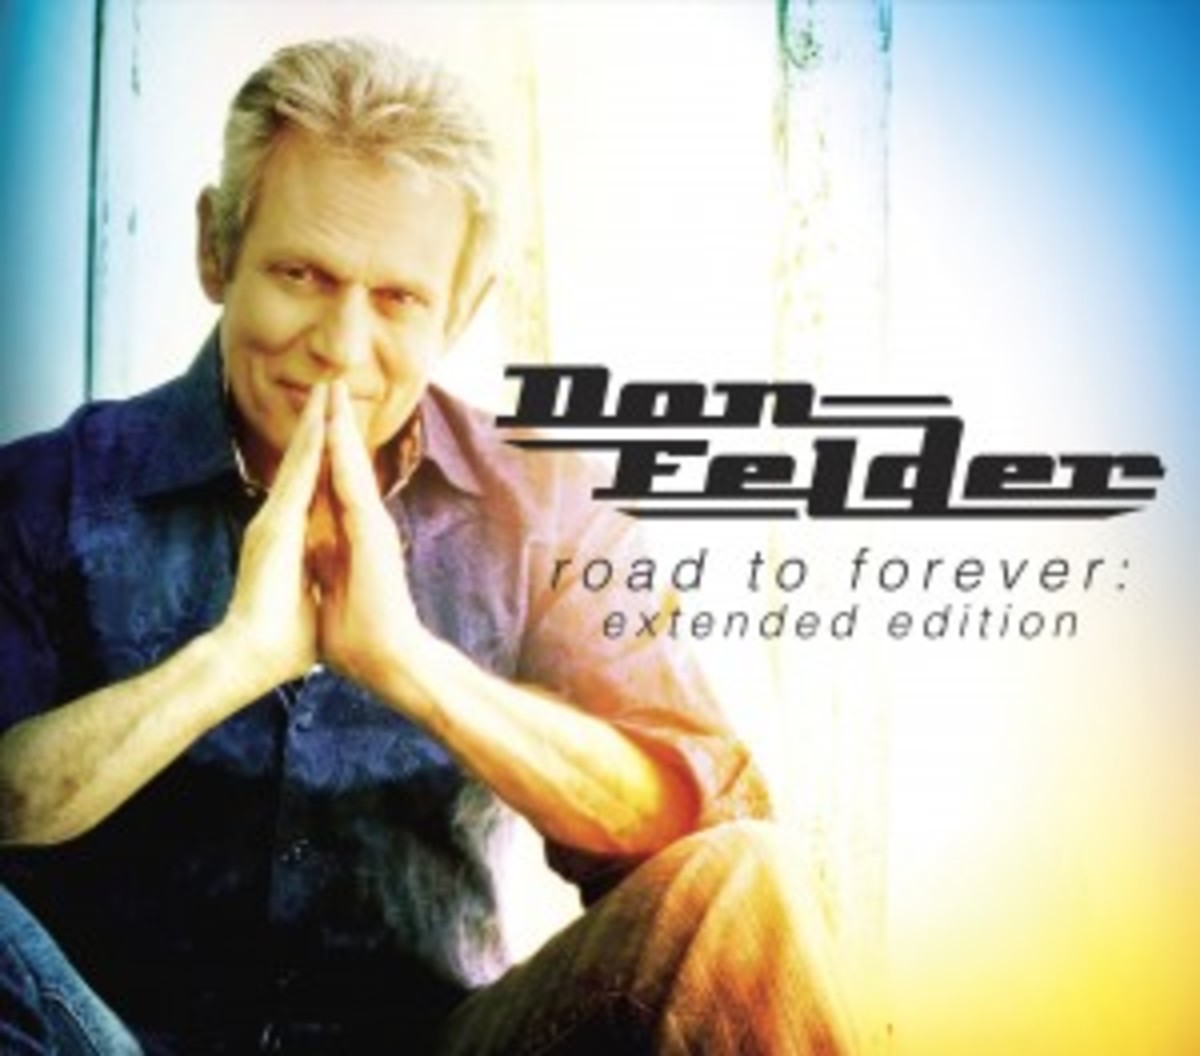 Don Felder Road To Forever Expanded Edition